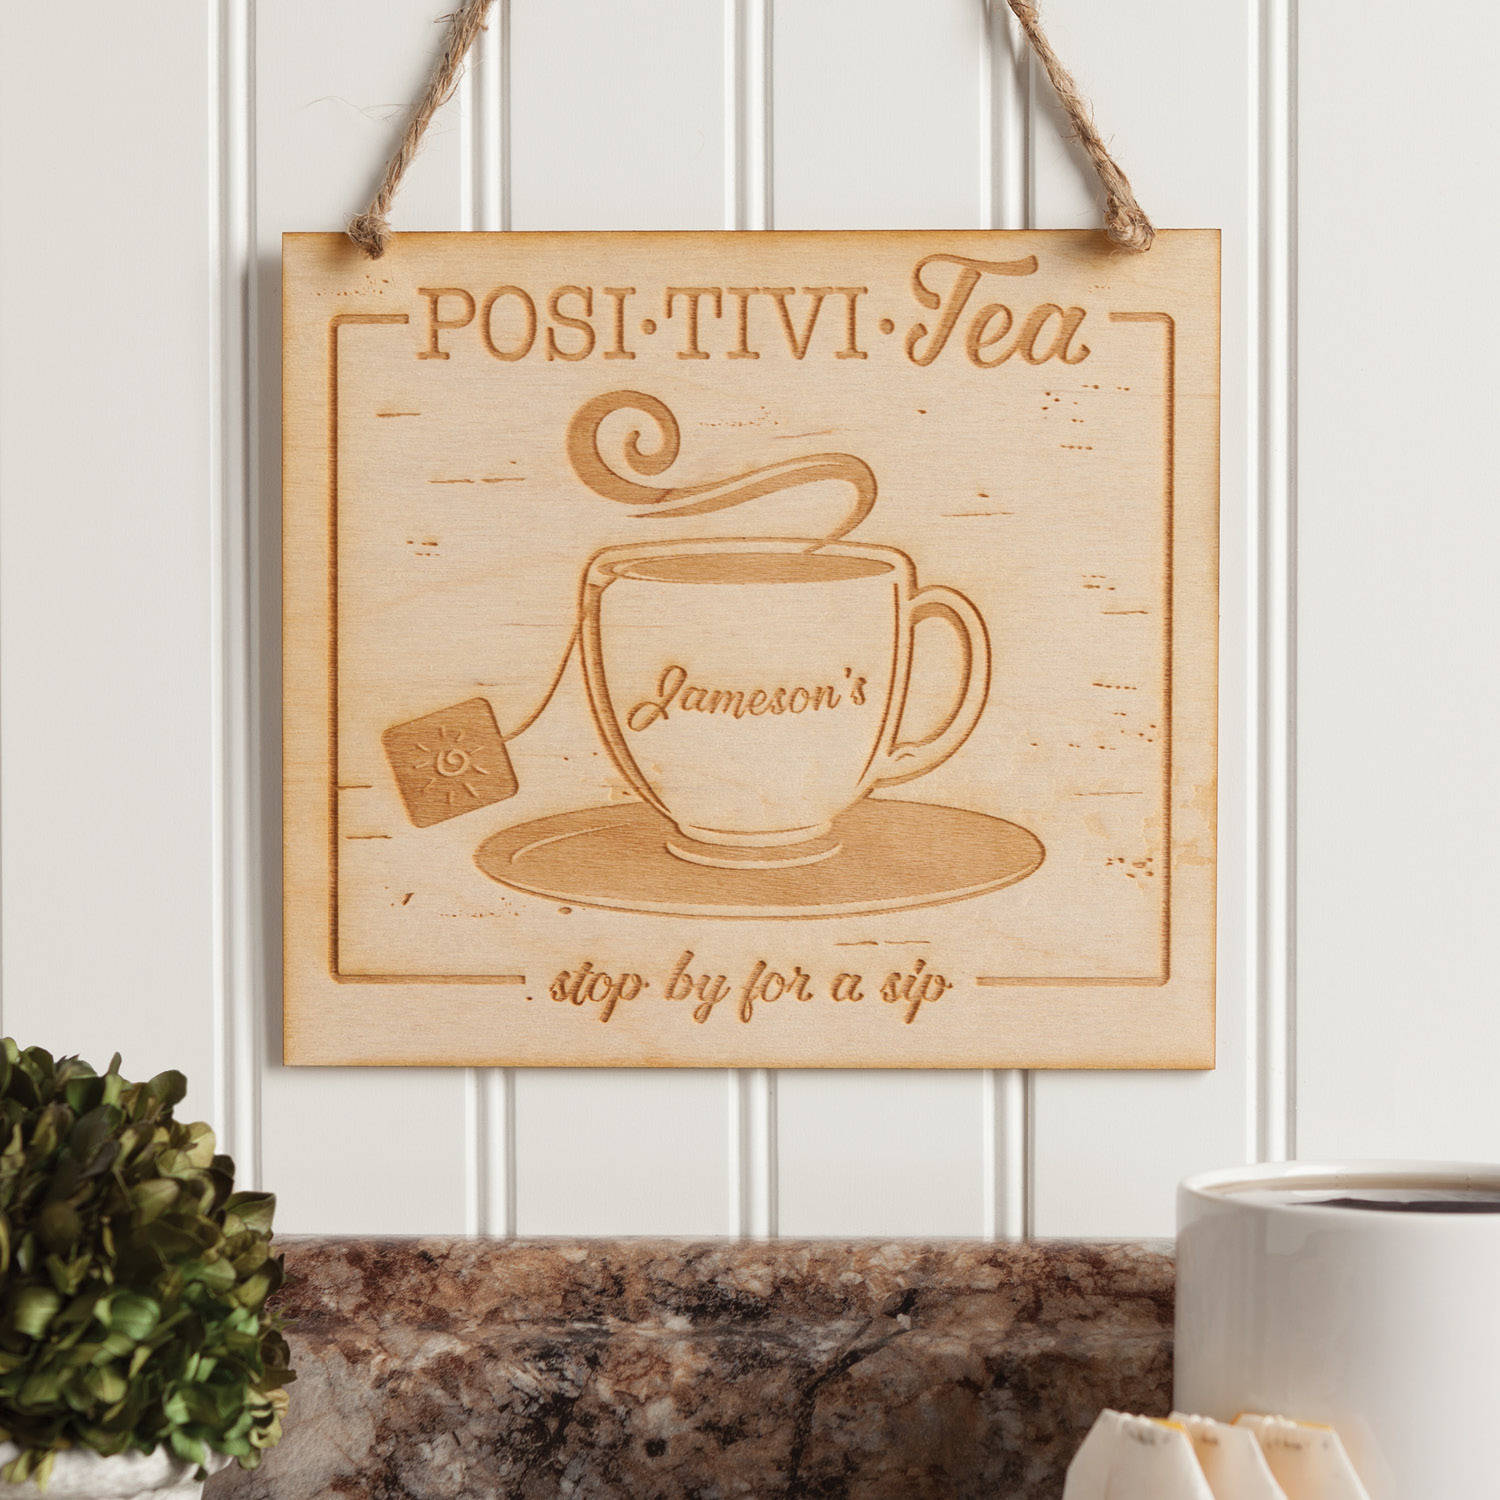 Posi-Tivi-Tea Personalized Wood Sign